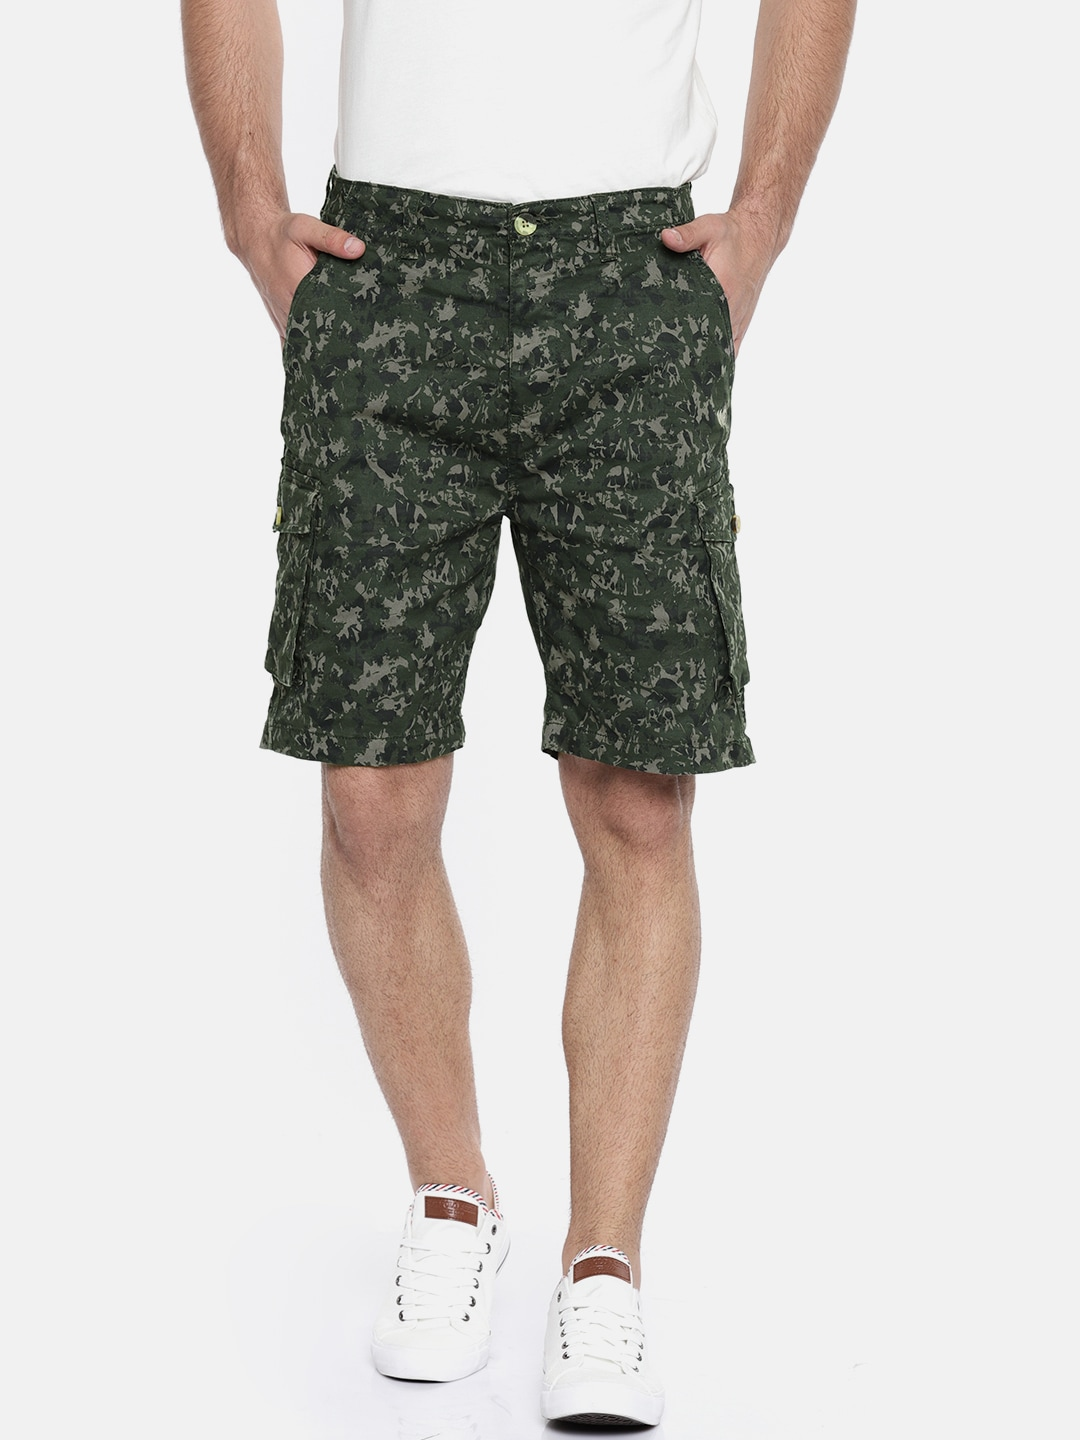 Military Shorts - Buy Military Shorts online in India 3782aa905a1